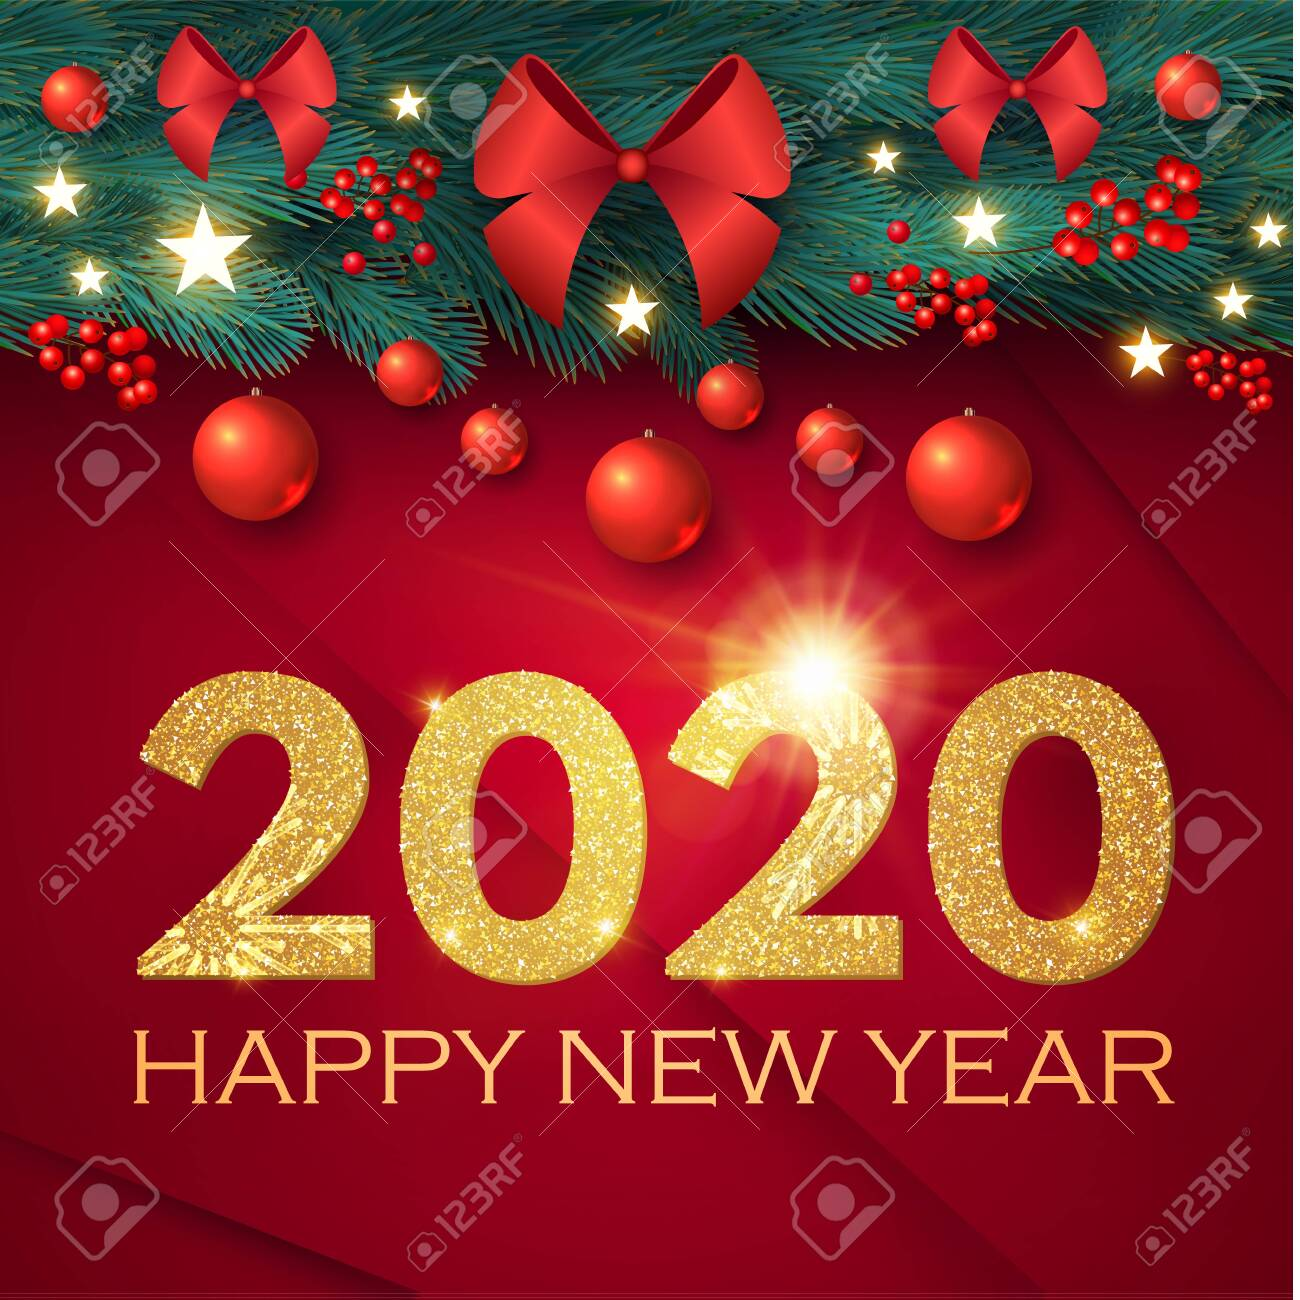 New Christmas Music 2020 Happy New 2020 Year Realistic Christmas Composition With Fir